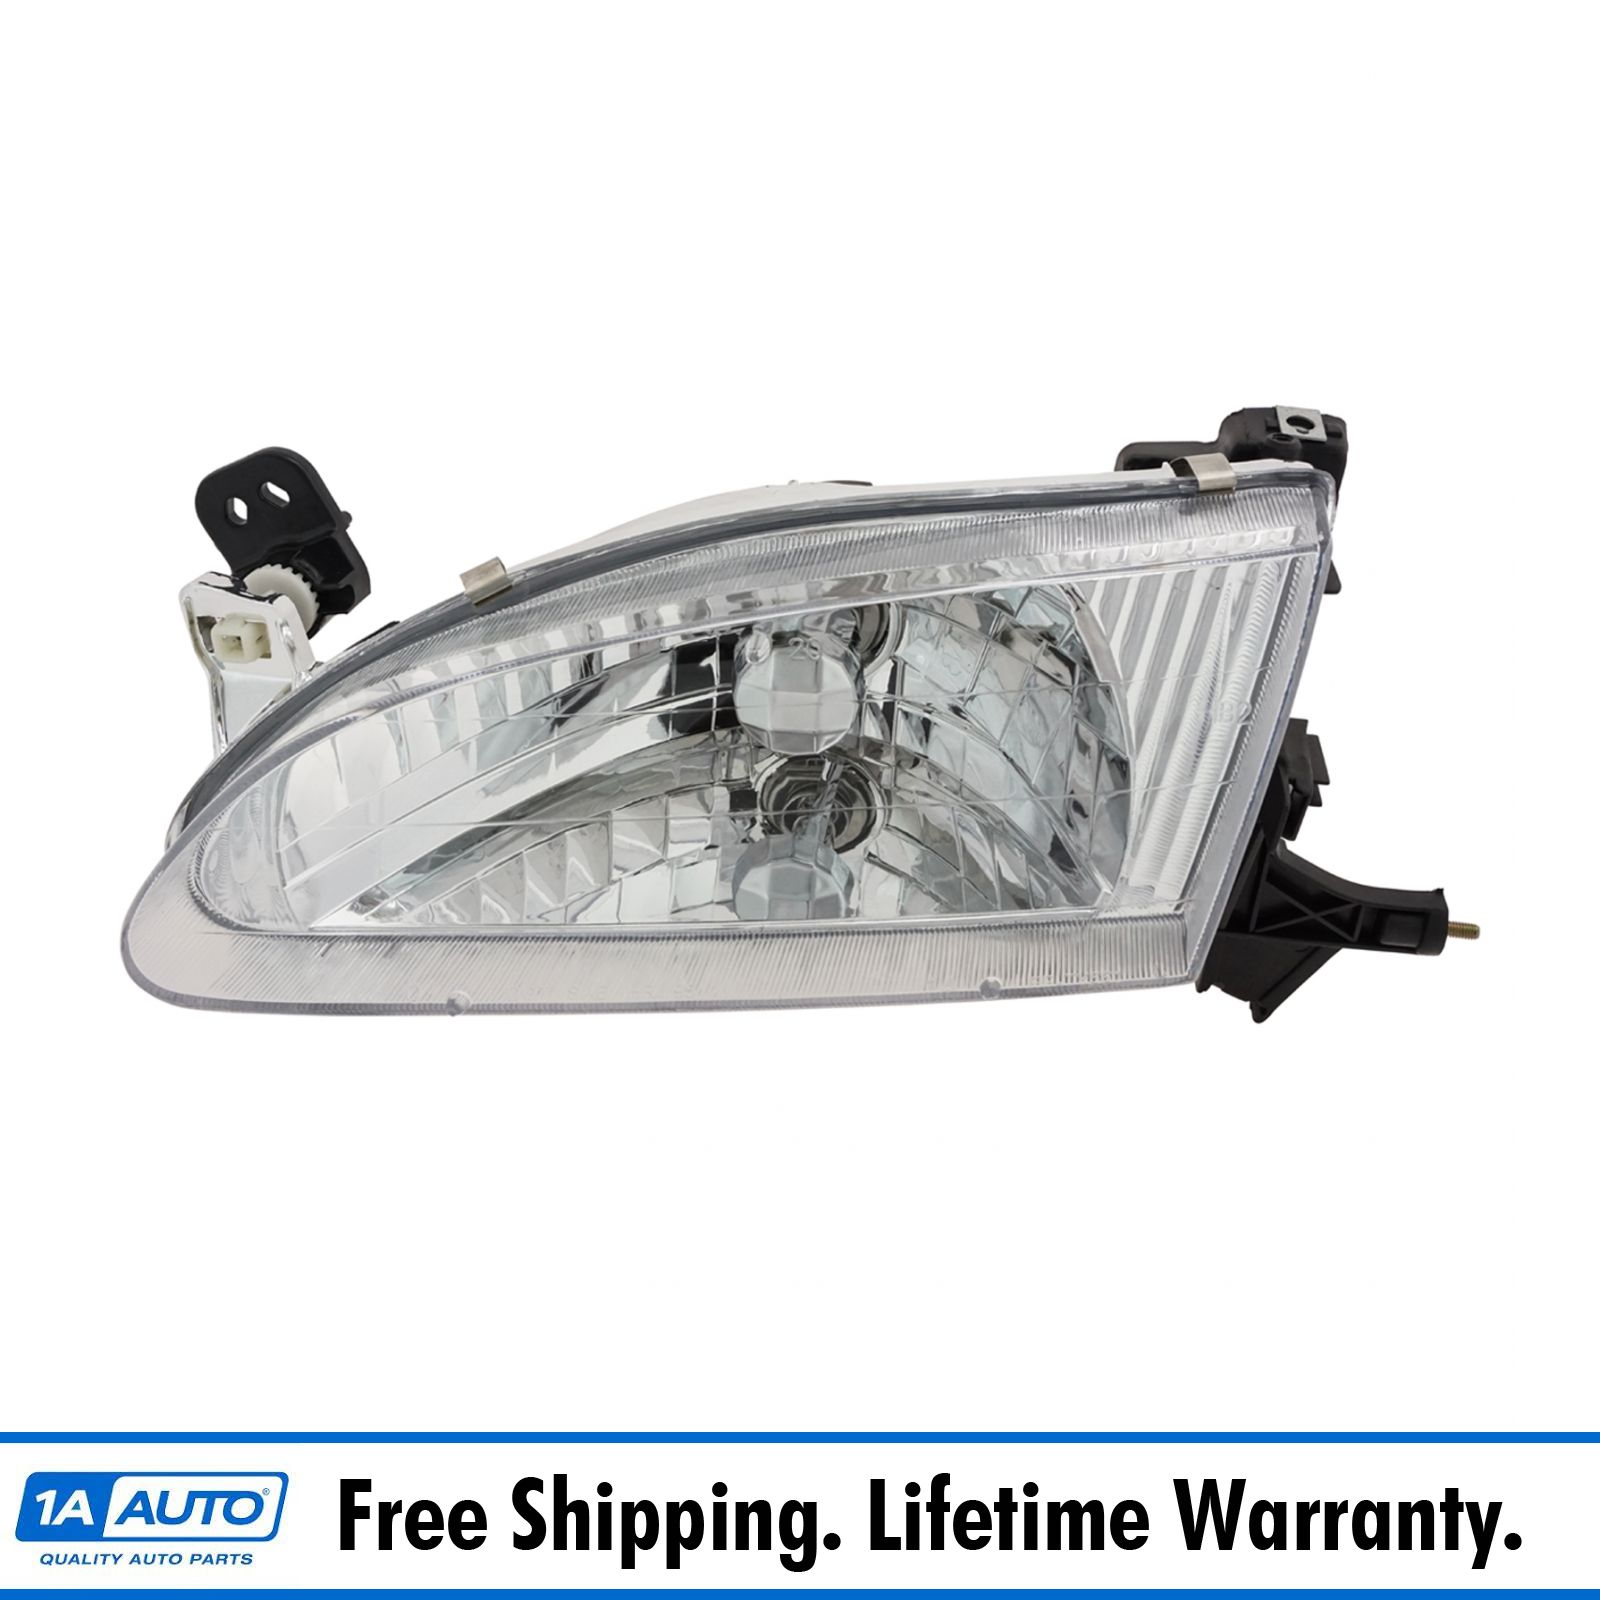 Details About Headlight Headlamp Driver Side Left Lh New For 98 00 Toyota Corolla